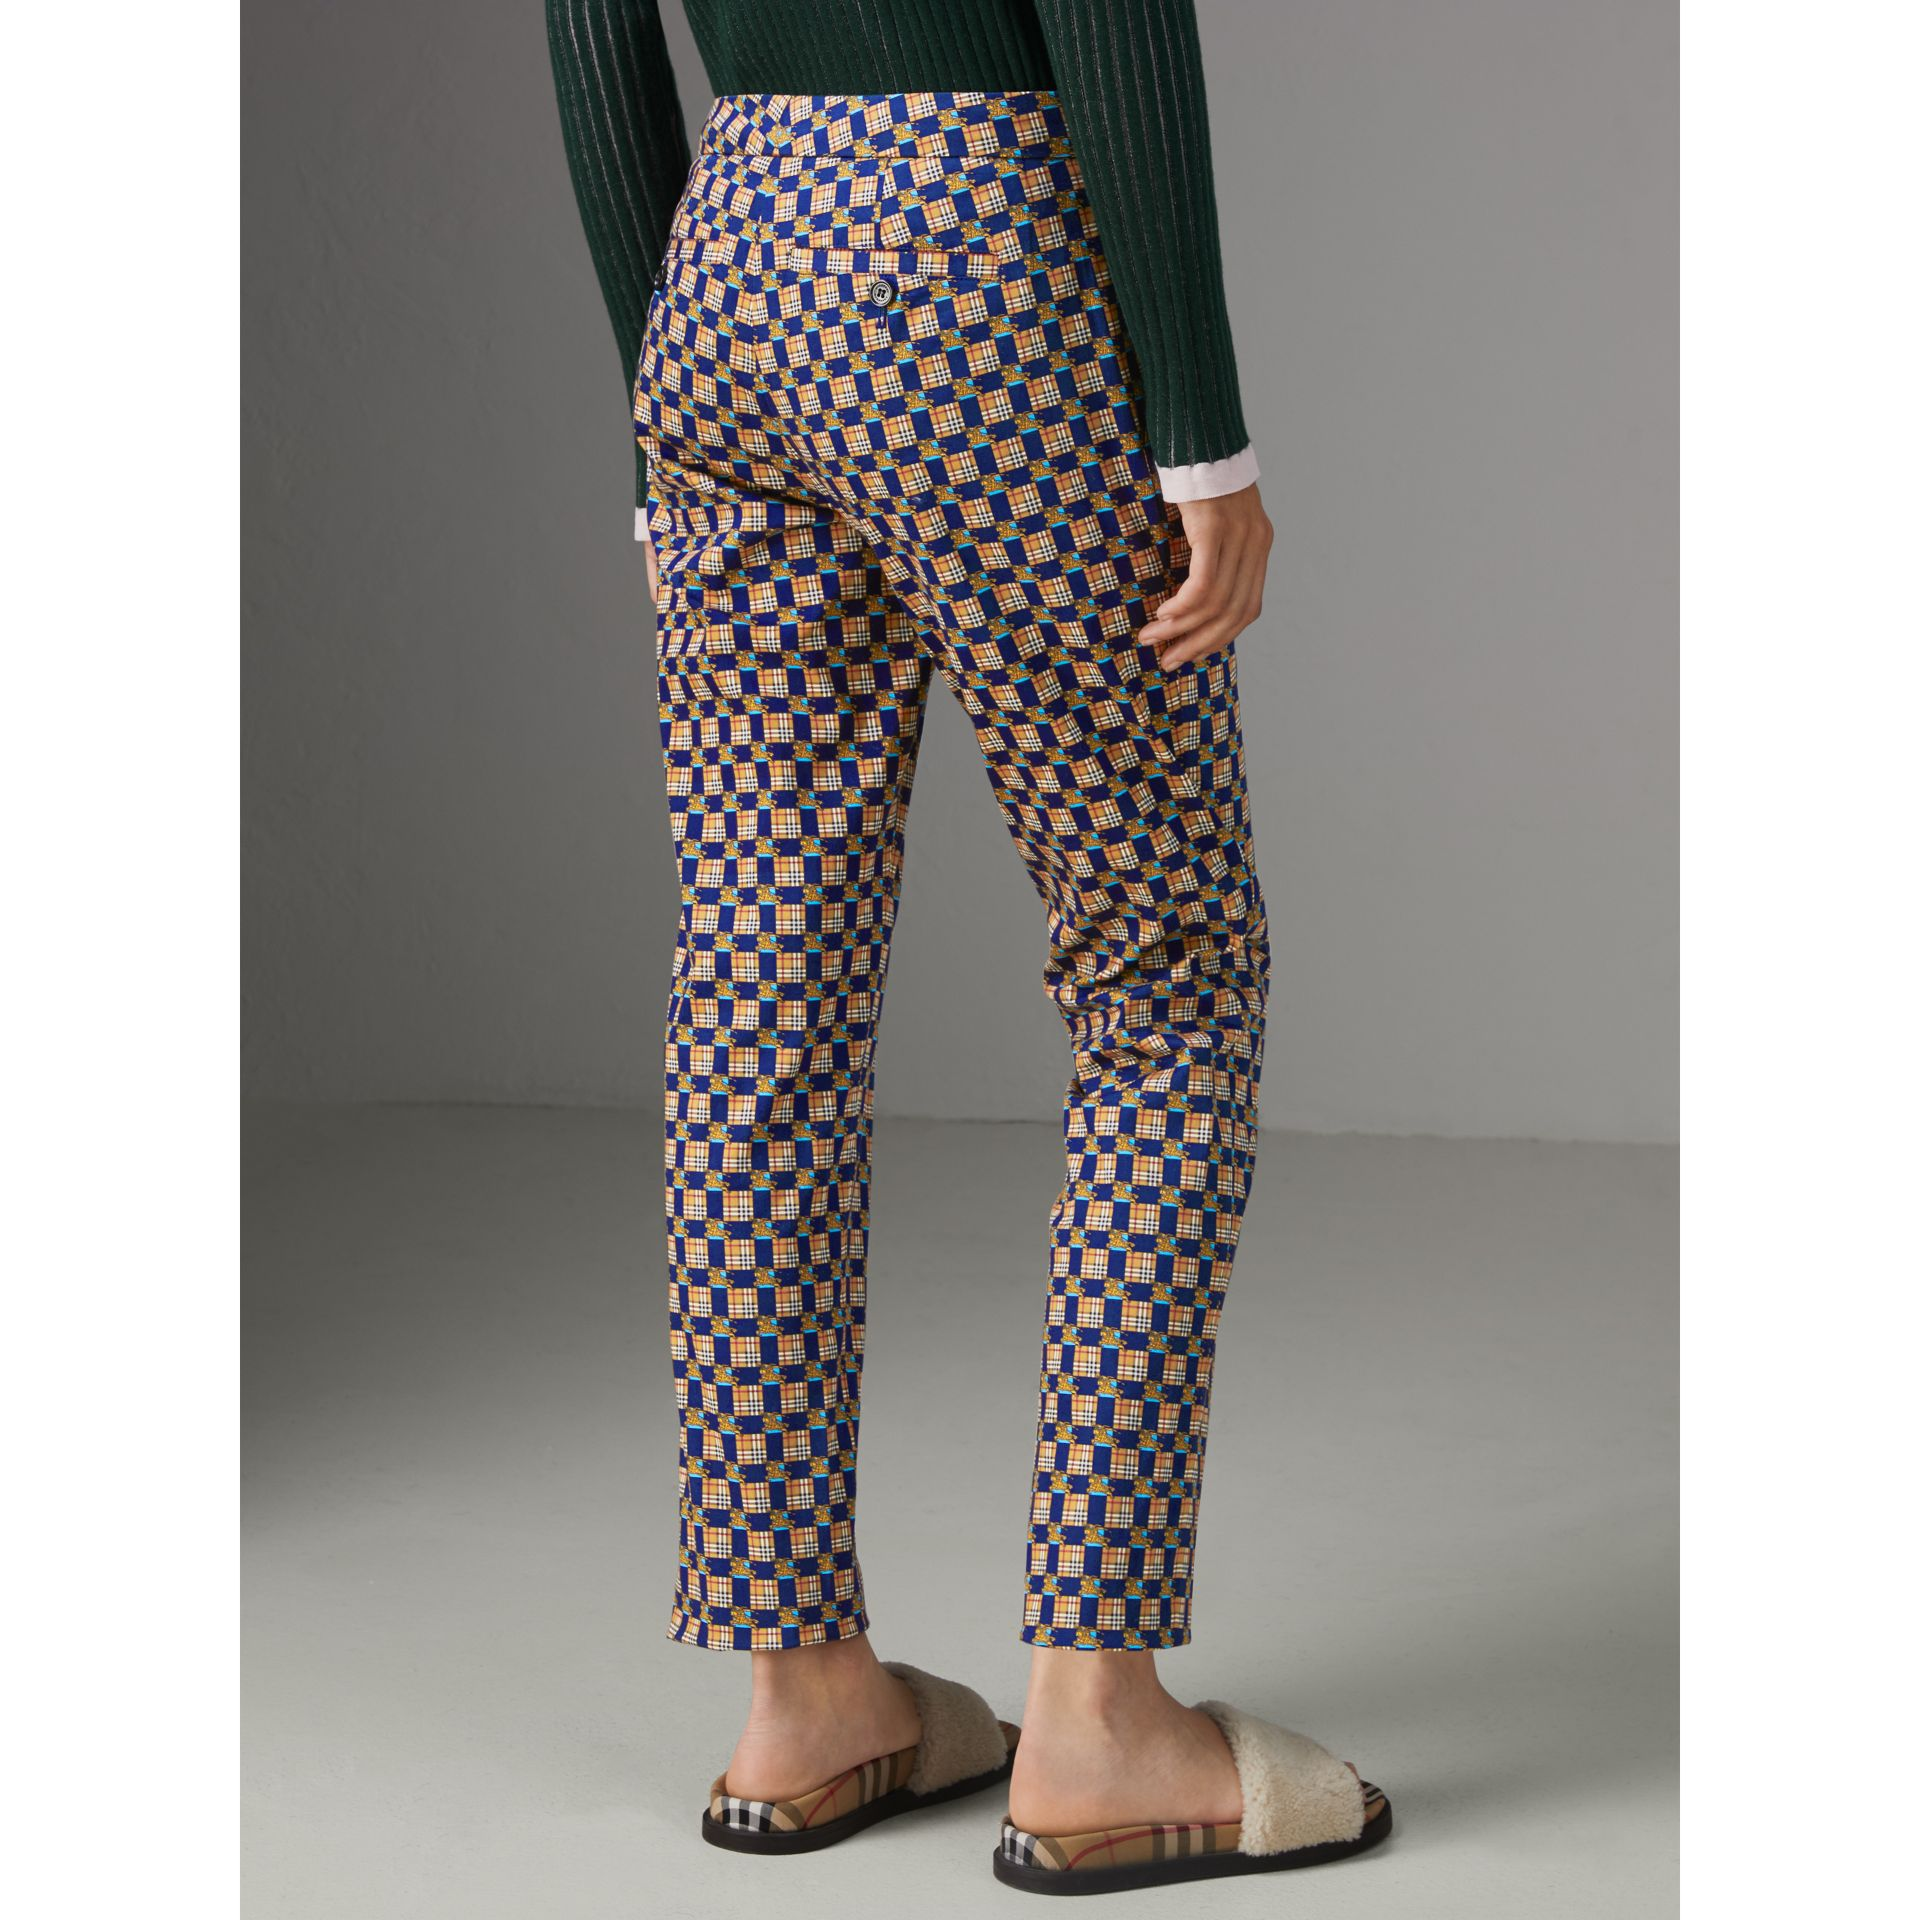 Tiled Archive Print Stretch Cotton Cigarette Trousers in Navy - Women | Burberry United States - gallery image 2